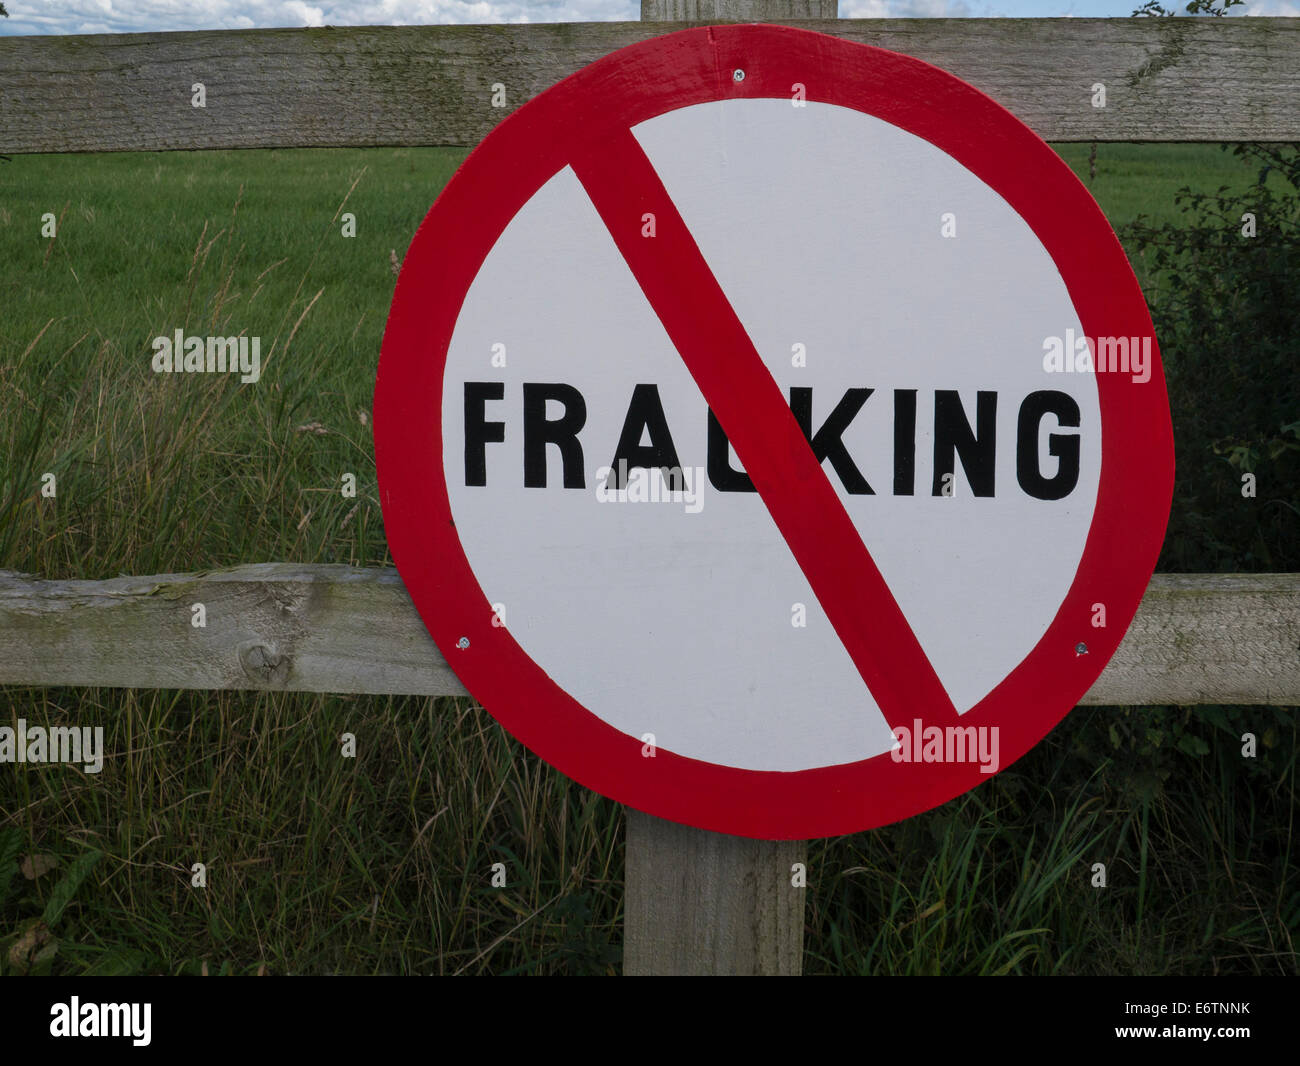 No Fracking sign put up by villagers against process Lancashire England UK - Stock Image